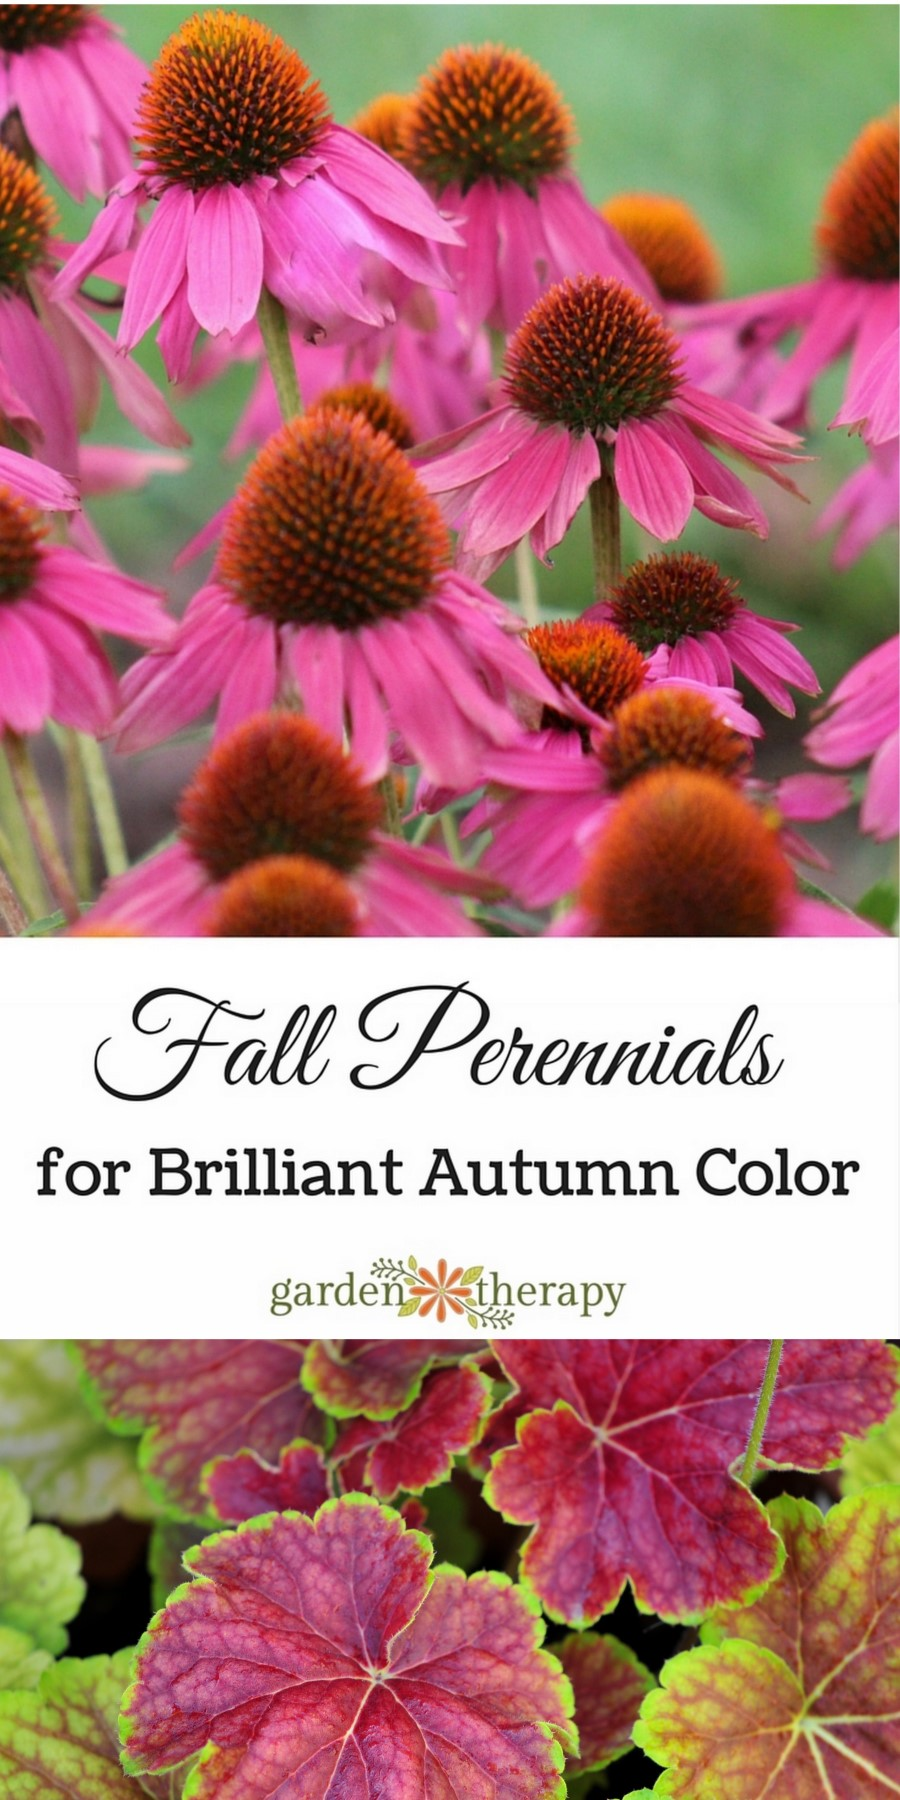 Grow These Fall Perennials For Brilliant Autumn Color